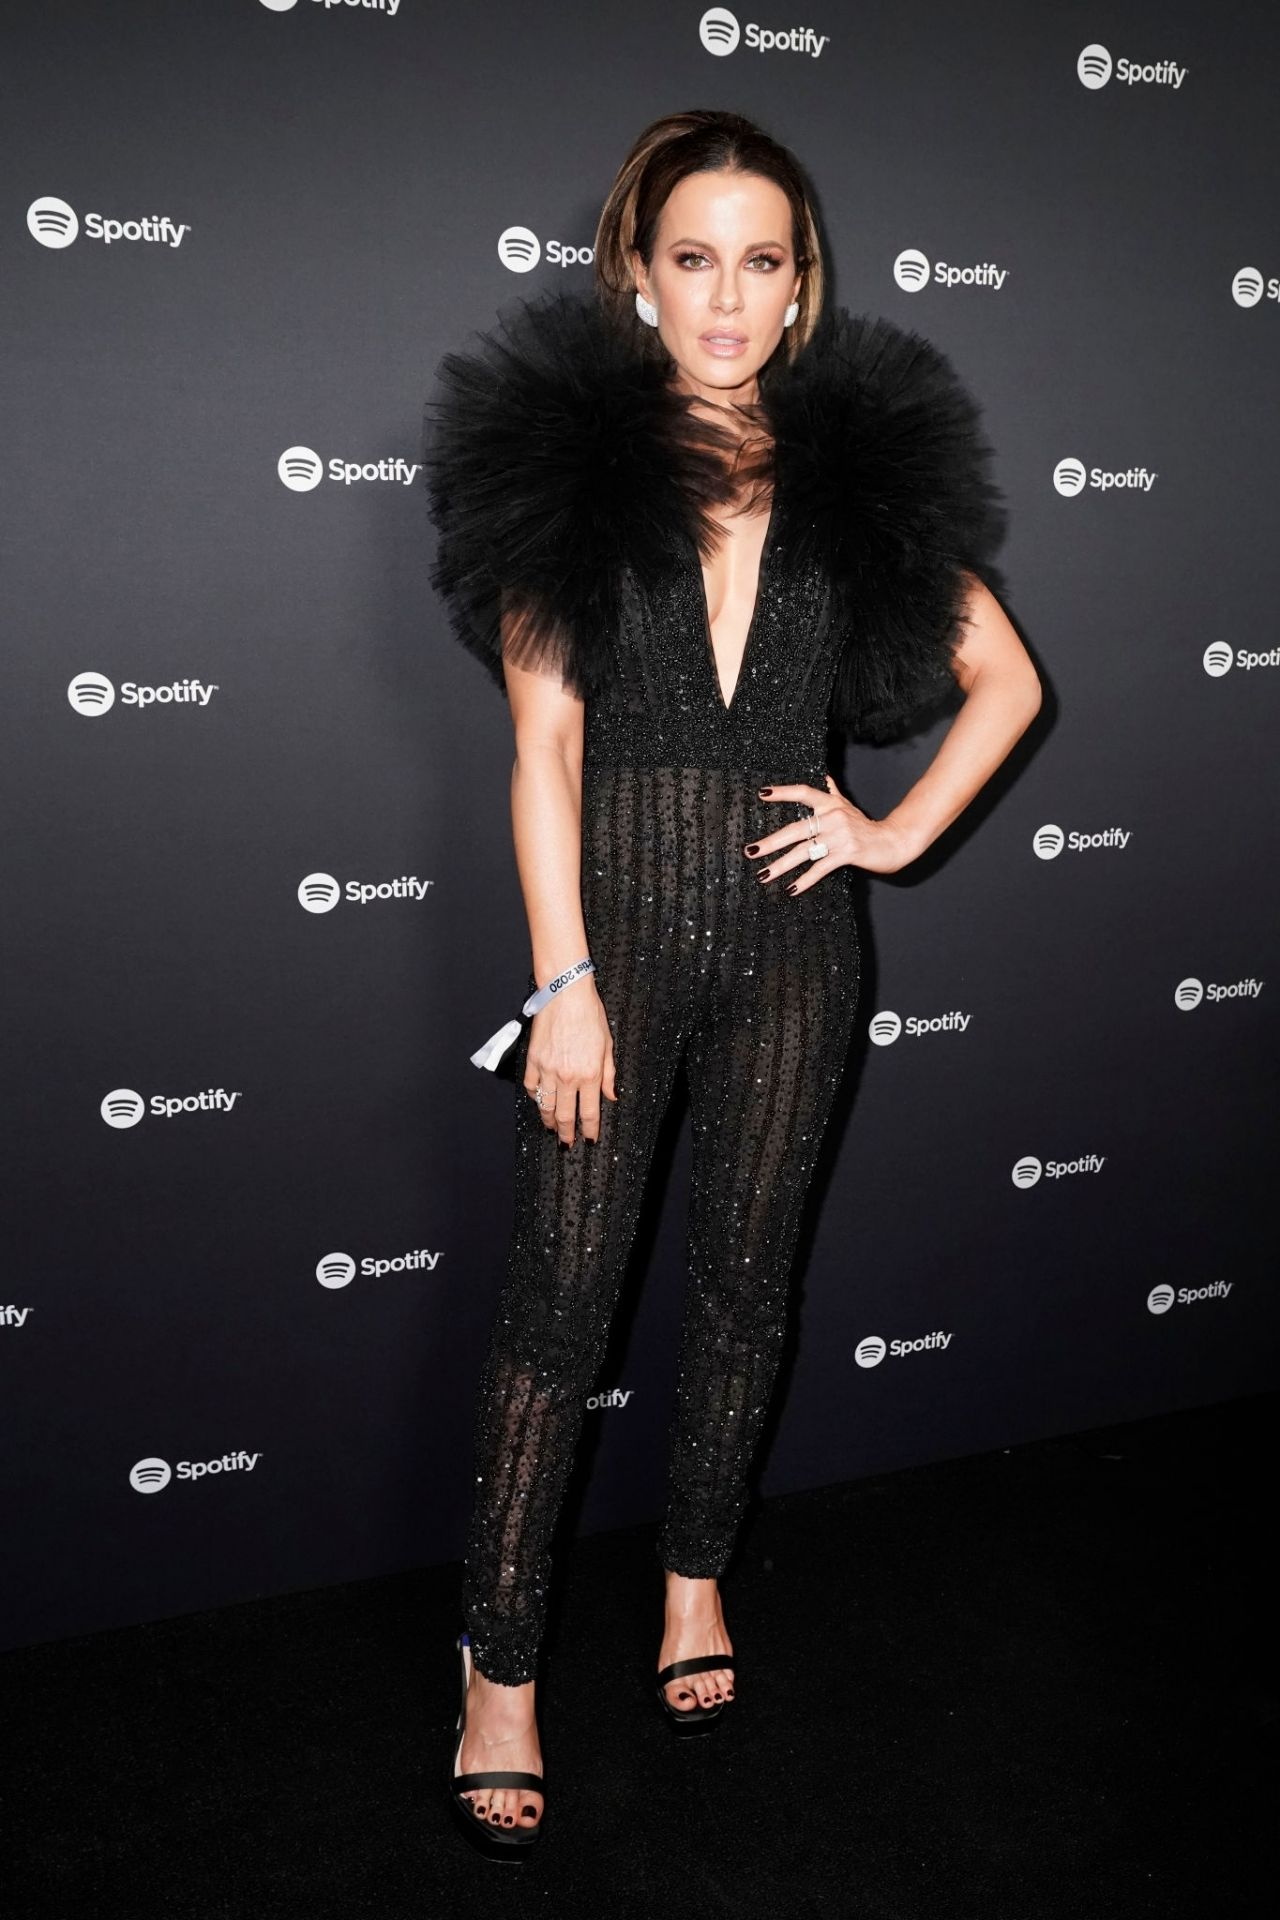 kate-beckinsale-in-jumpsuit-spotify-best-new-artist-2020-party-in-la